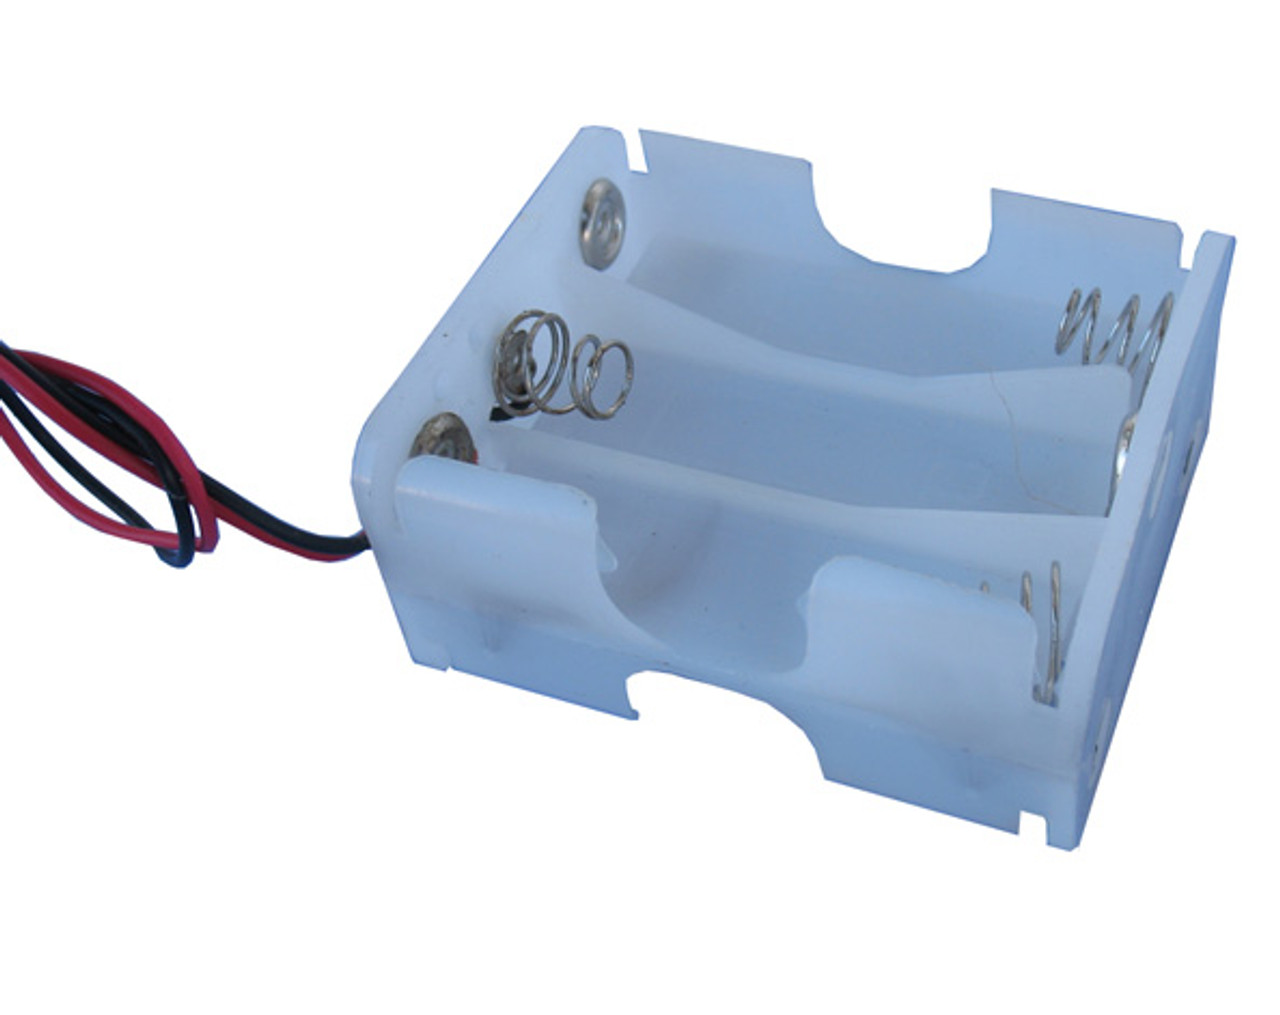 Plastic battery holder for 6 AA size batteries provides a total of about 9 volts and includes connection wires